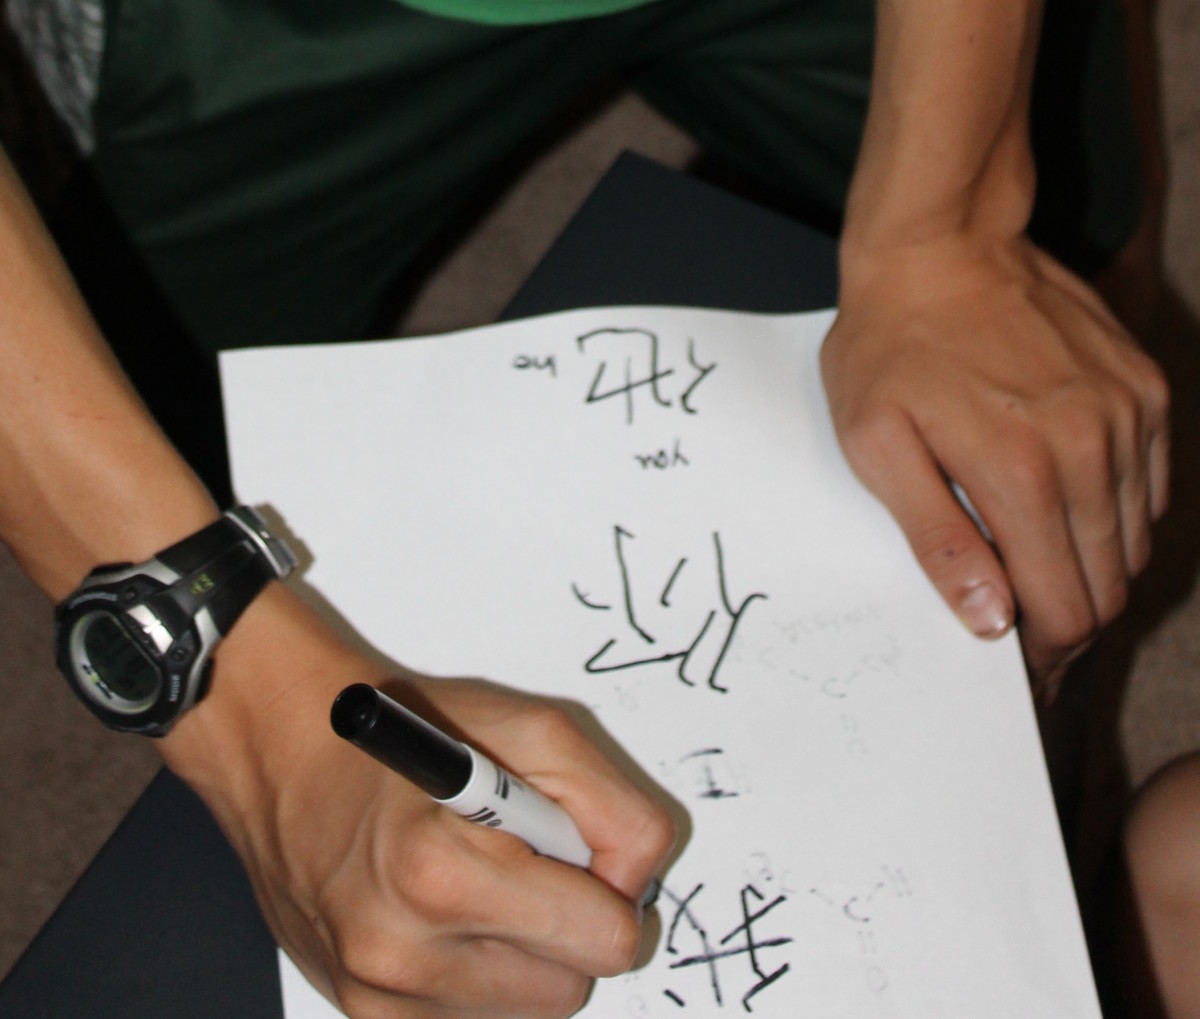 Attempting Chinese Character Writing